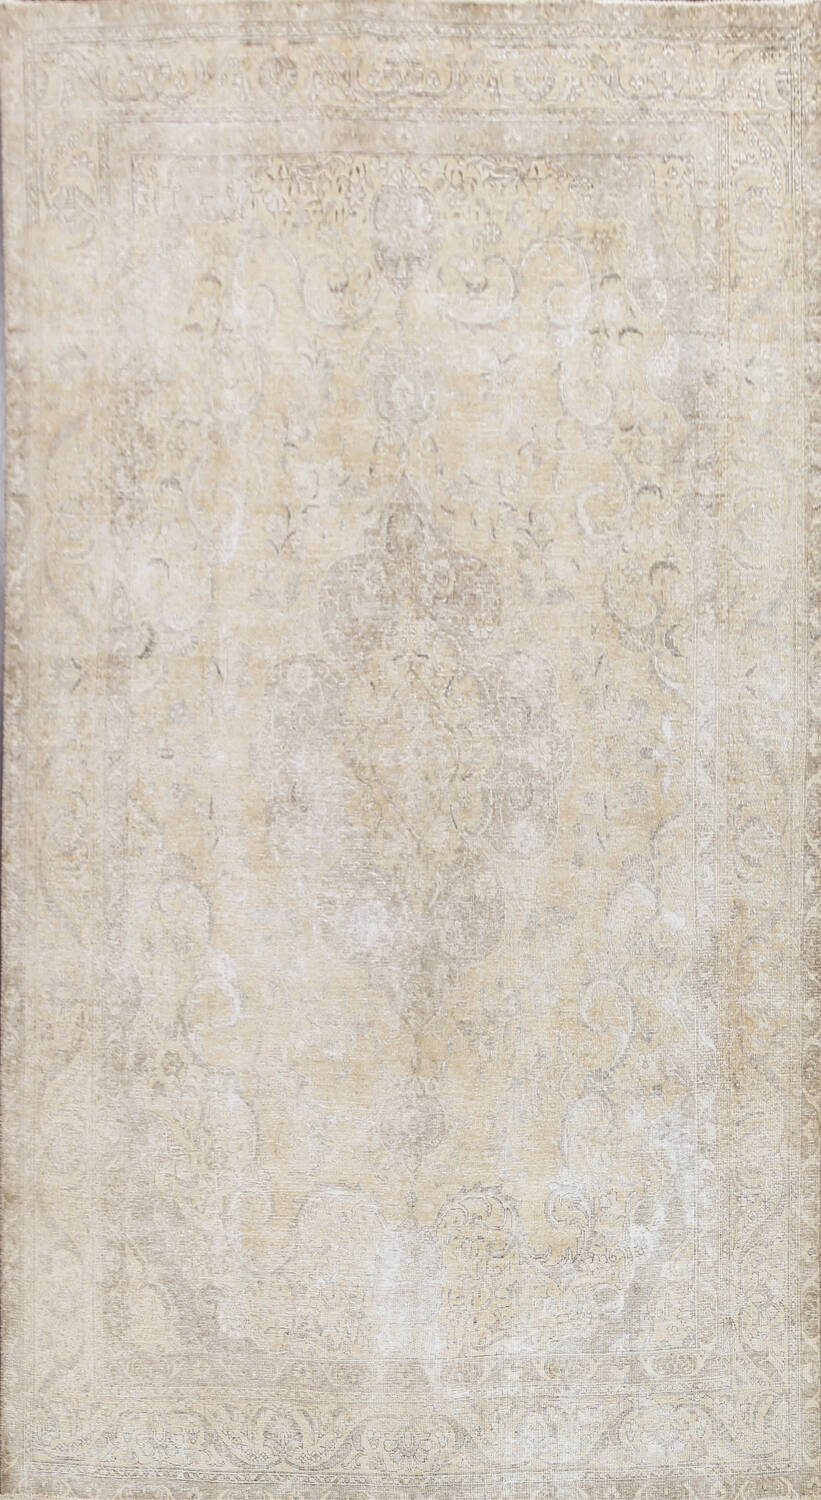 Muted Distressed Tabriz Persian Area Rug 8x12 image 1